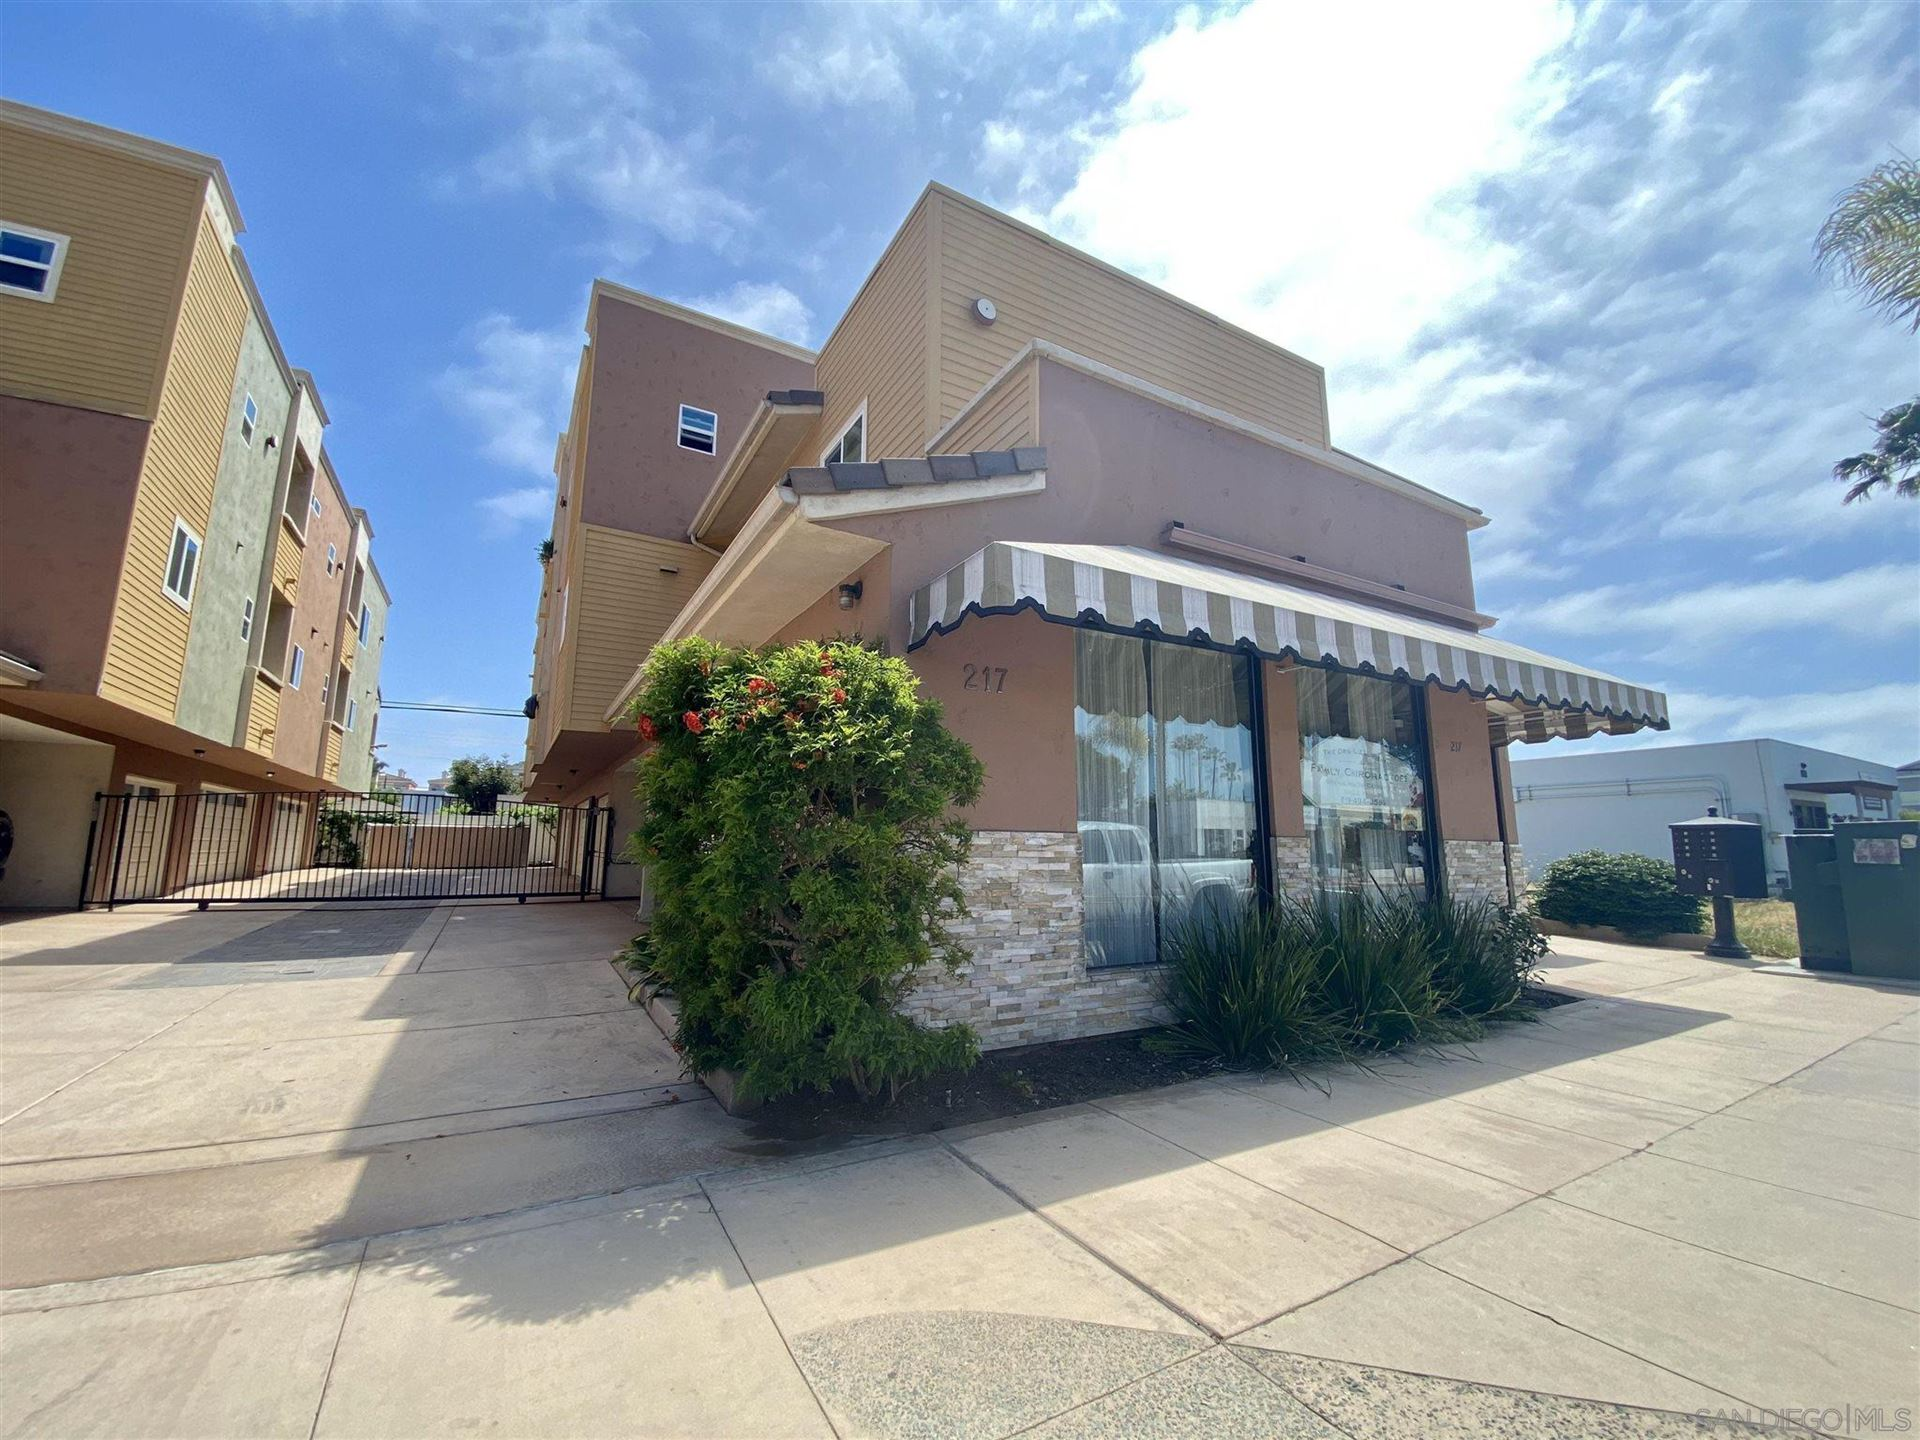 Photo of 221-225 Palm Ave, Imperial Beach, CA 91932 (MLS # 210020574)